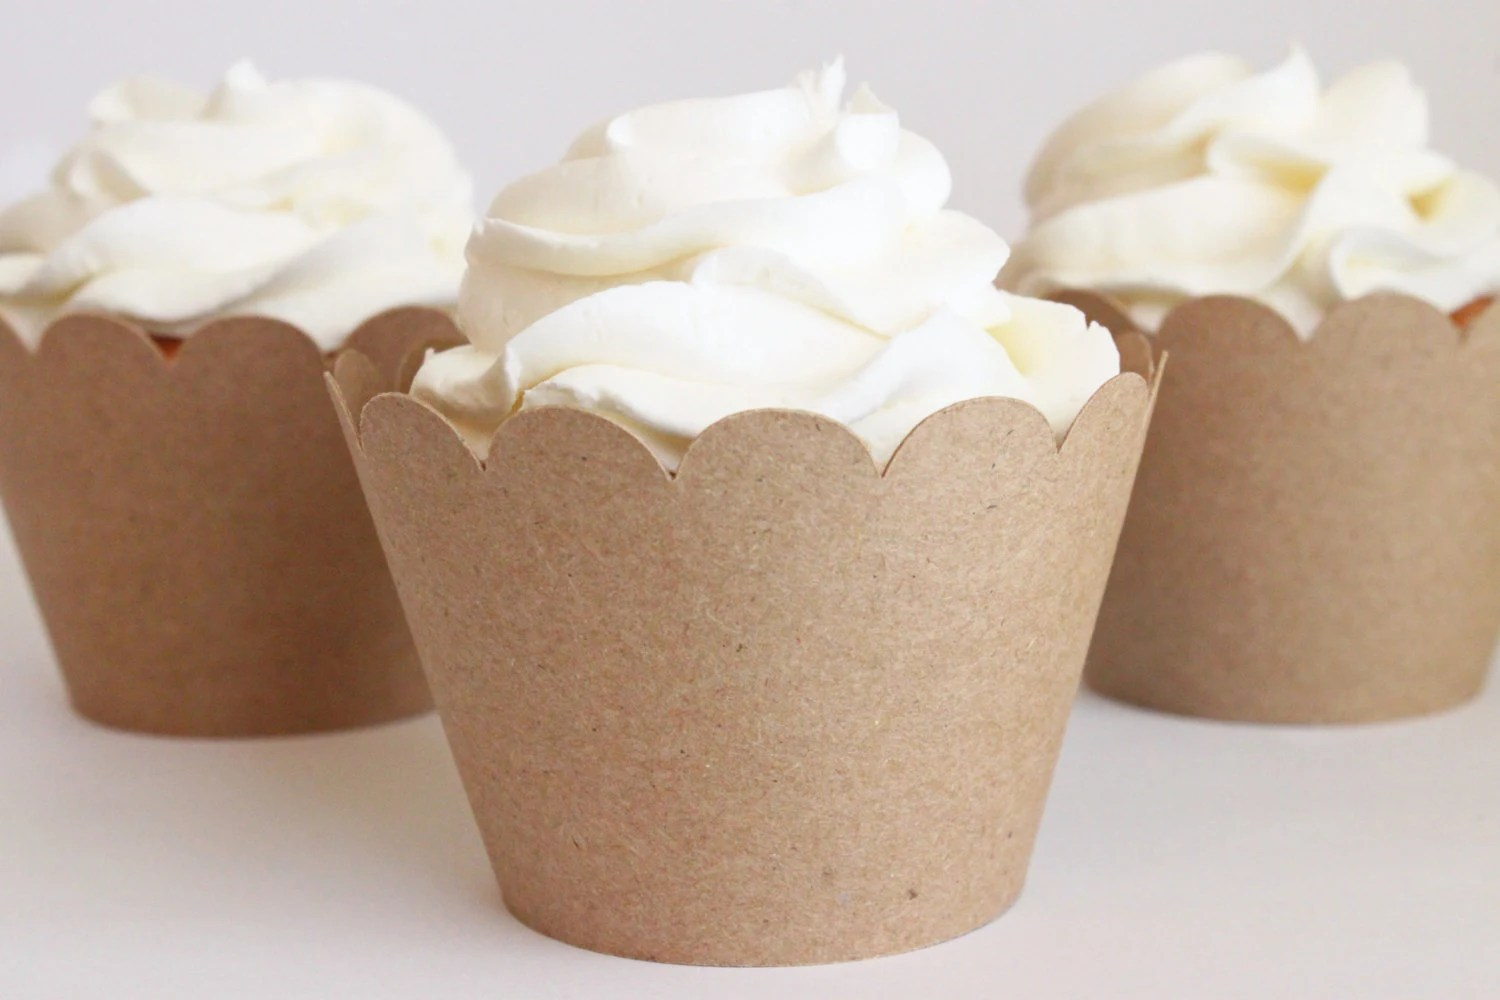 Paper Cupcake Holders. Green Direct Standard Size White